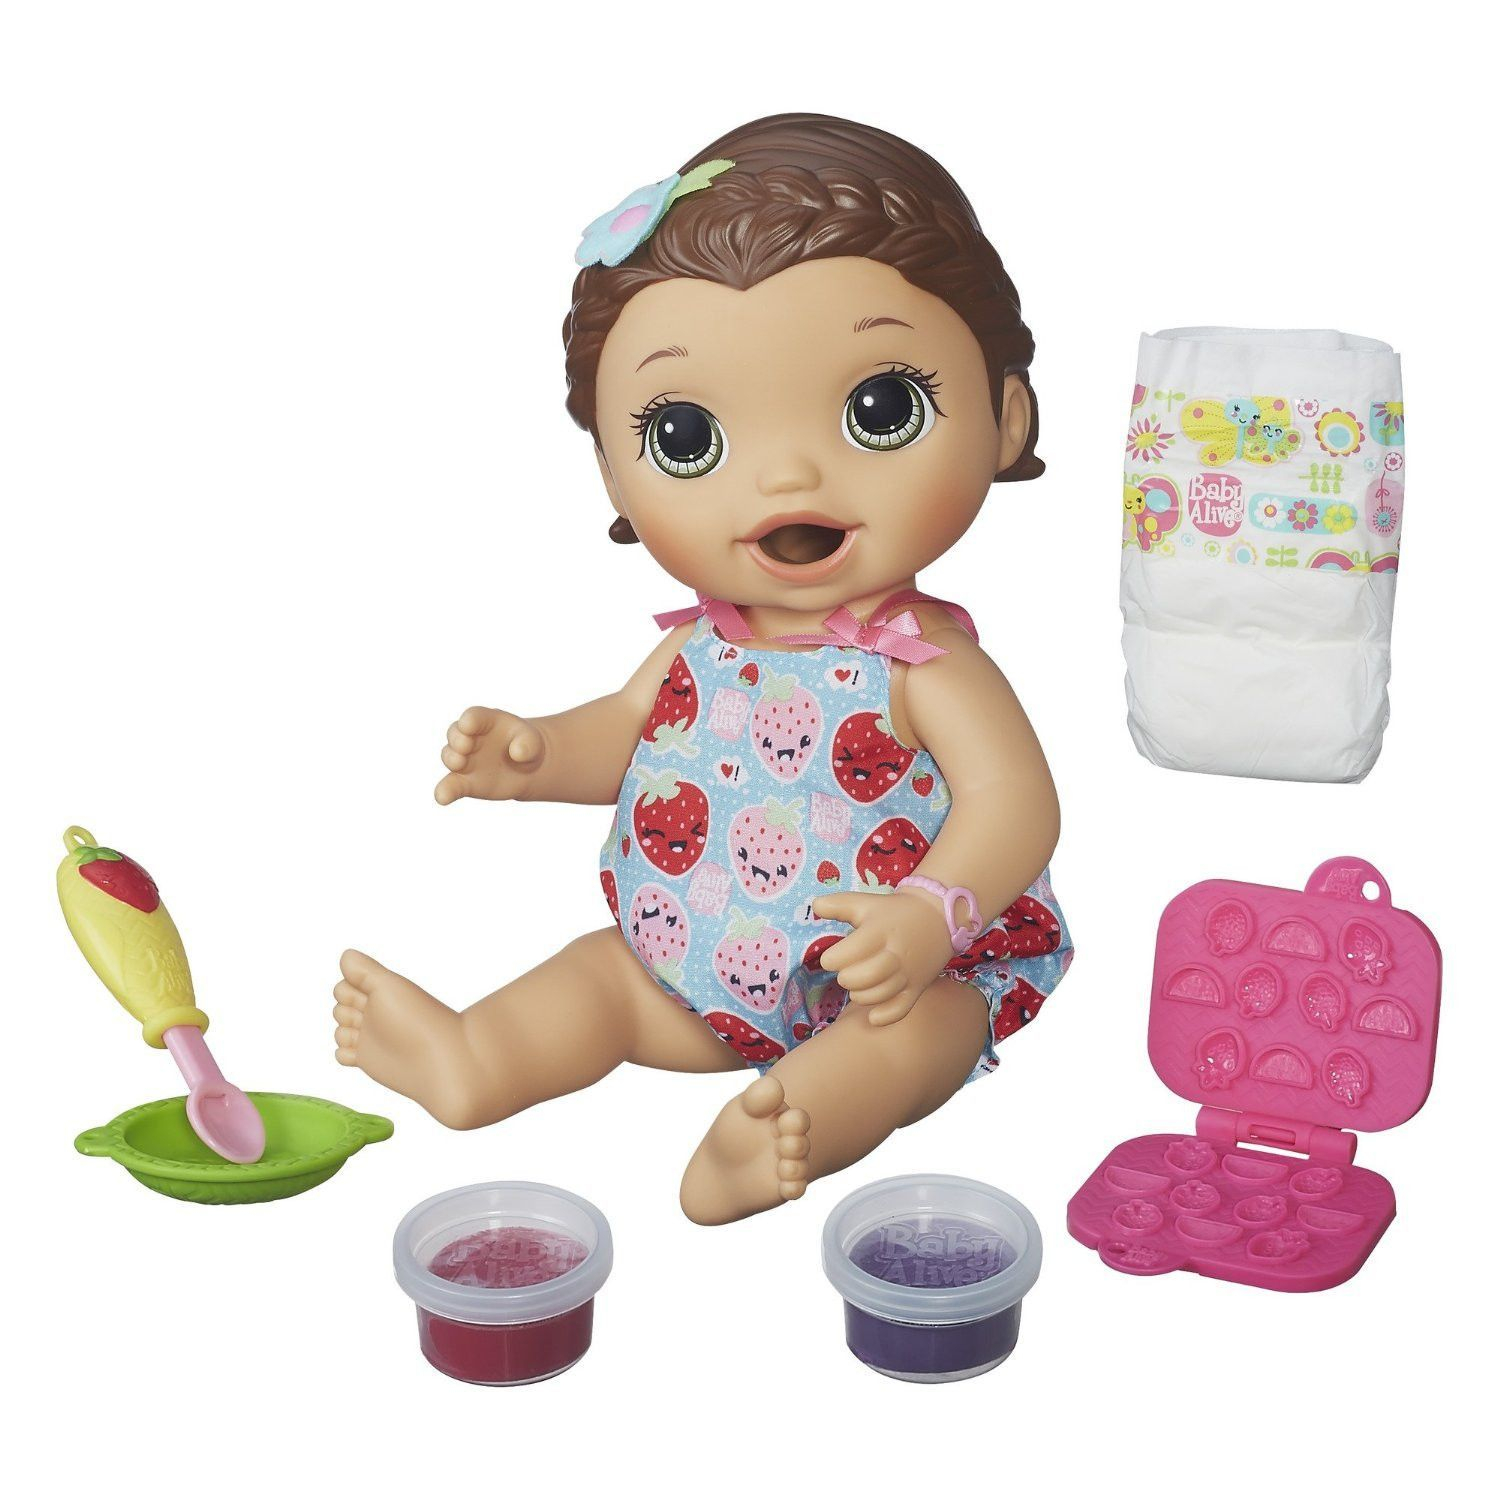 Baby Alive Interactive Talking Baby Doll Super Snacks Lily Brunnette Only 5 In Stock Order Today Product Descript Best Baby Doll Baby Alive Dolls Super Snacks